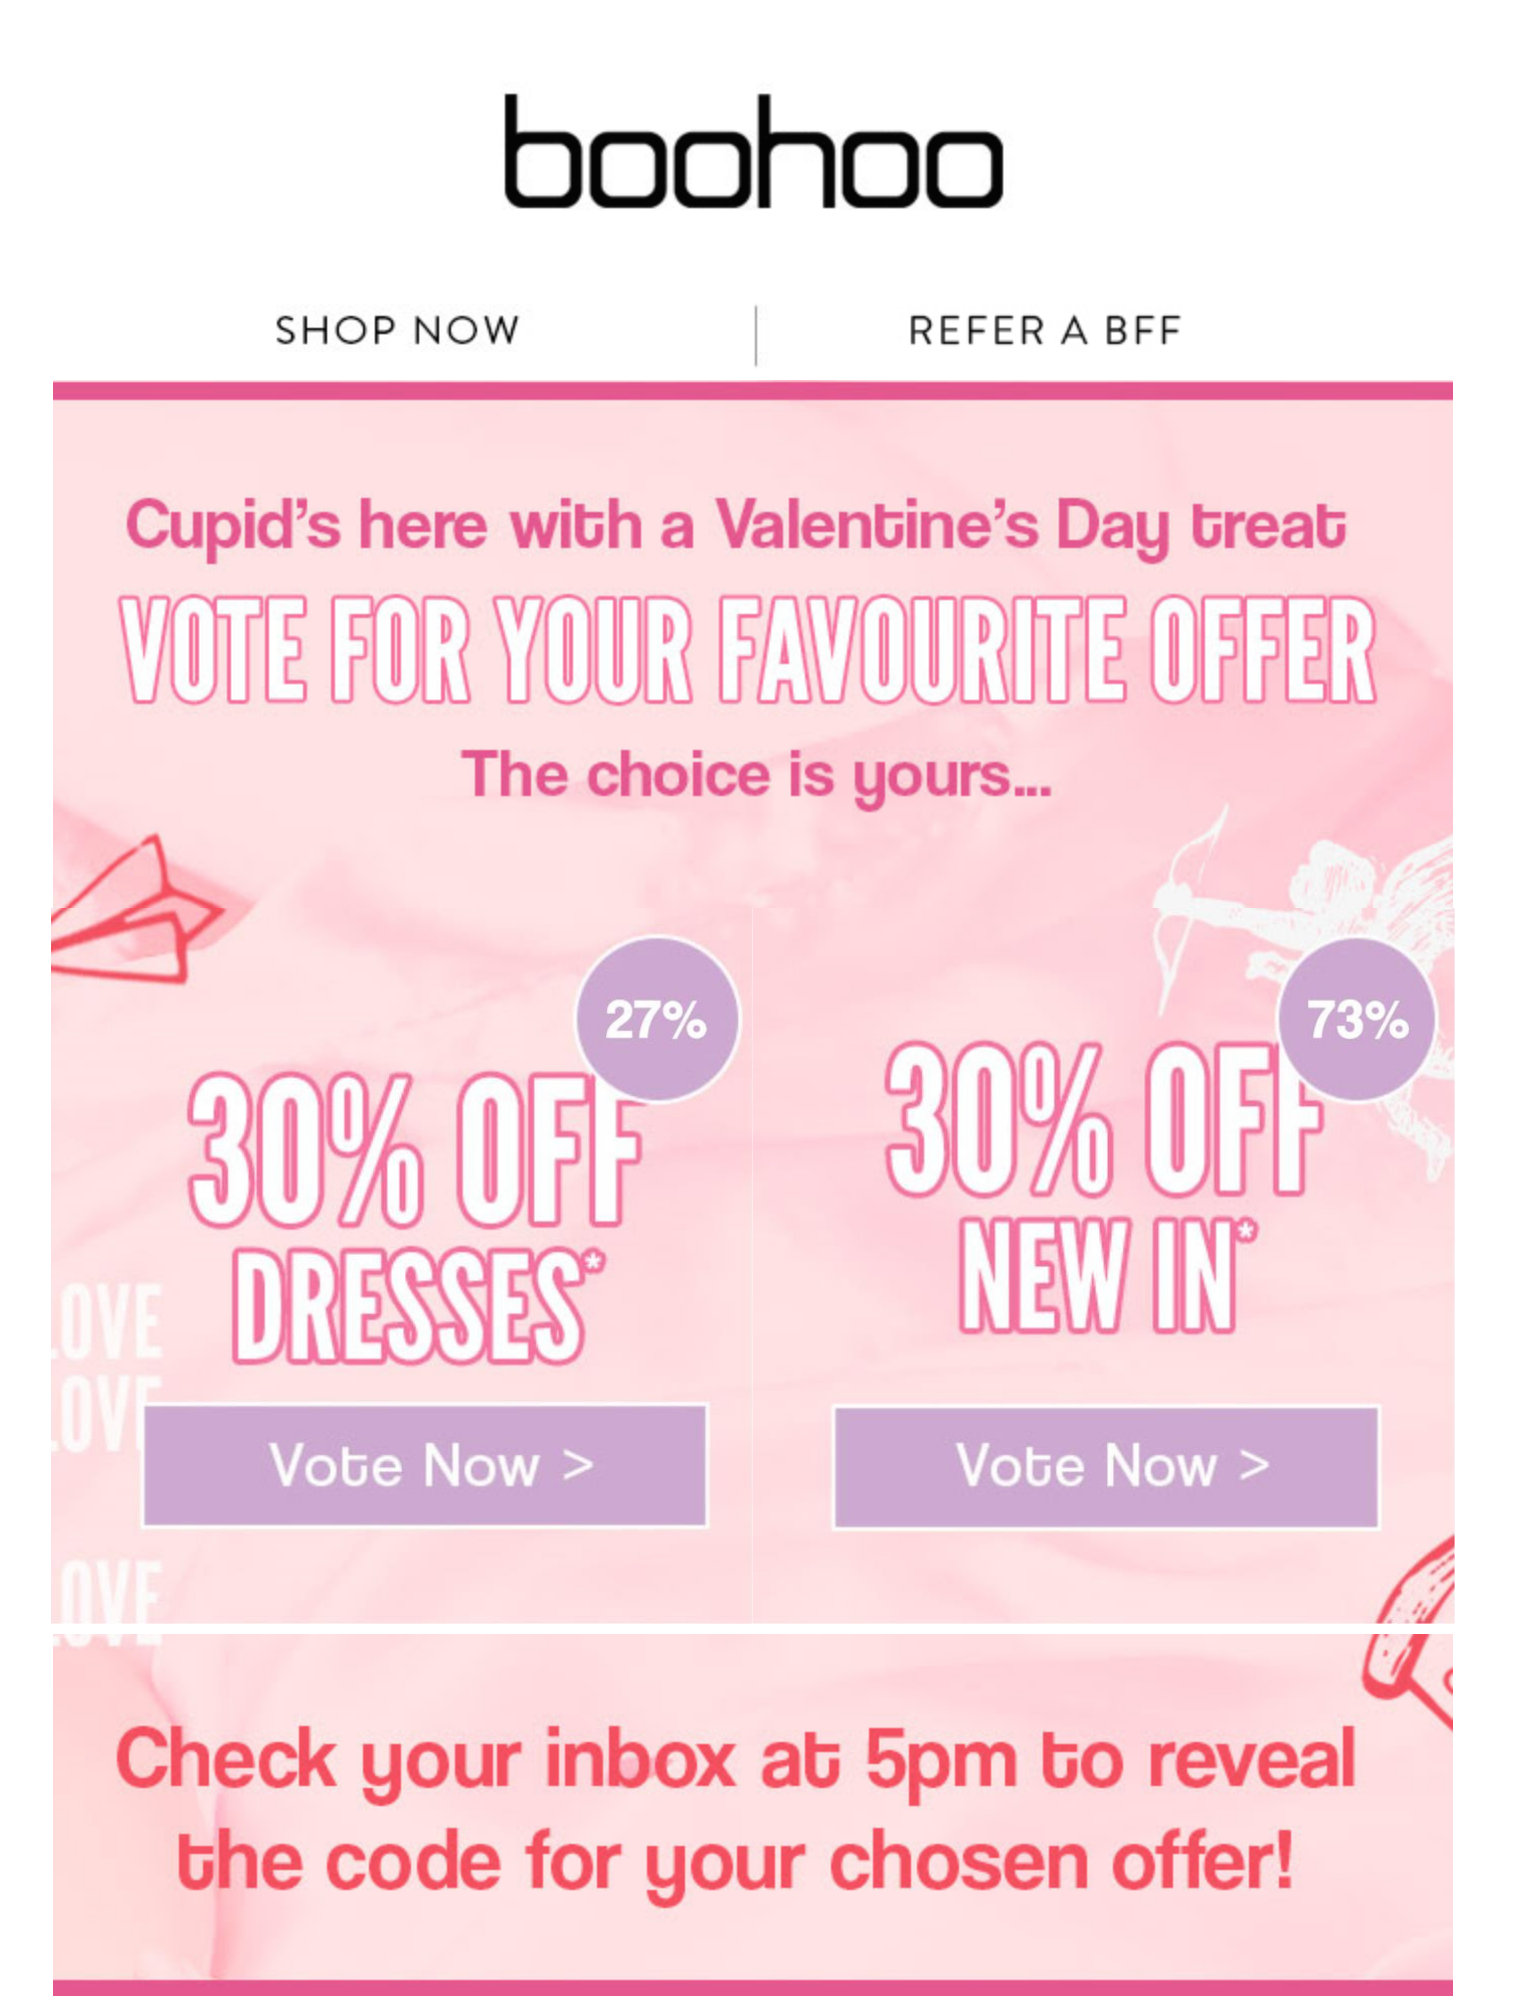 Boohoo live polling email